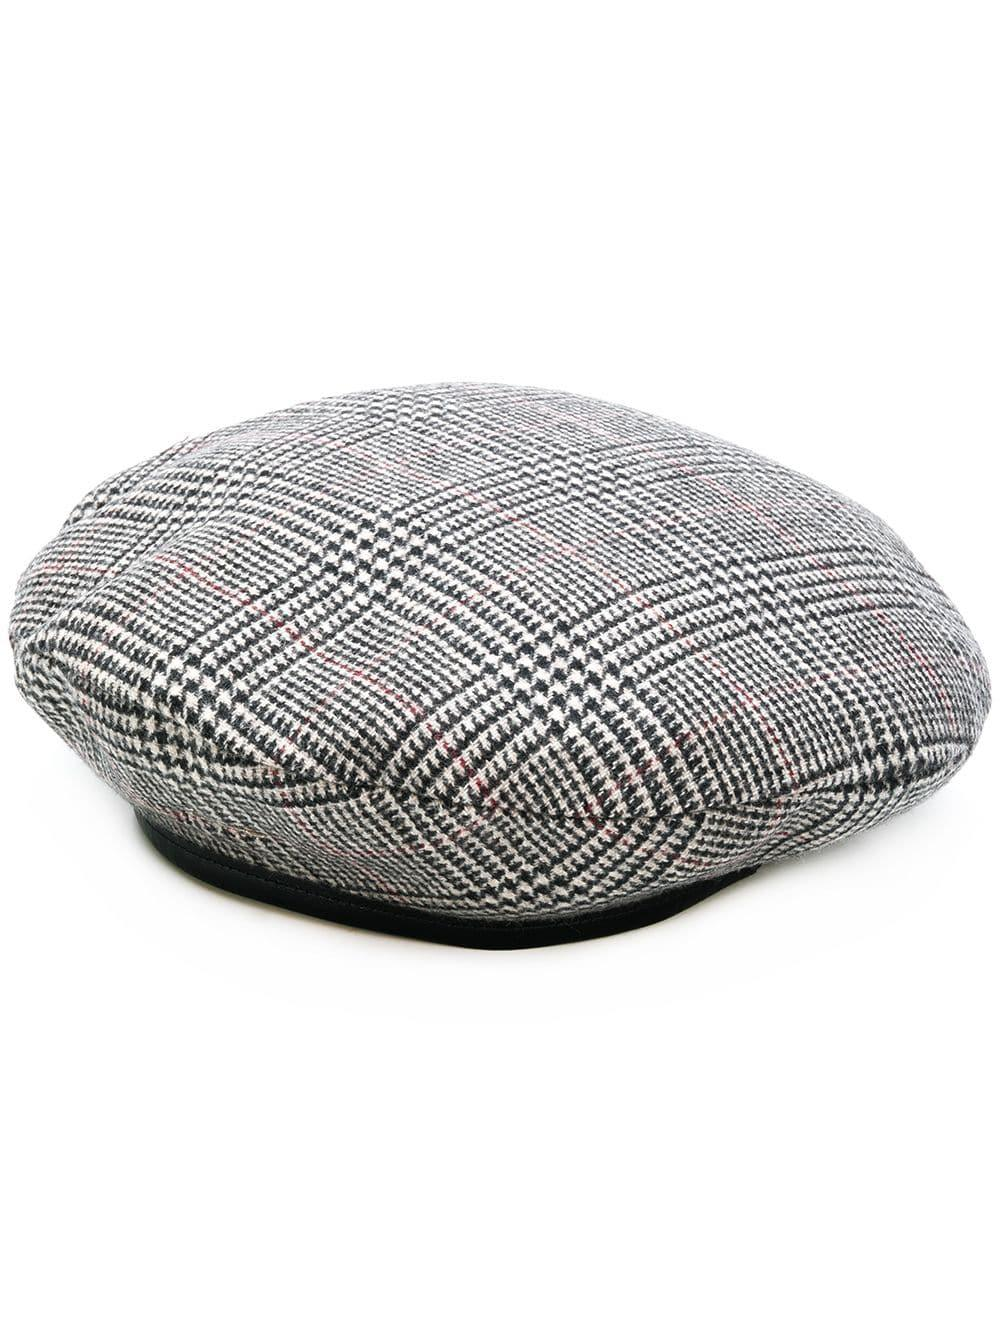 59e773c237d Don Paris Wool Beret in Gray - Lyst